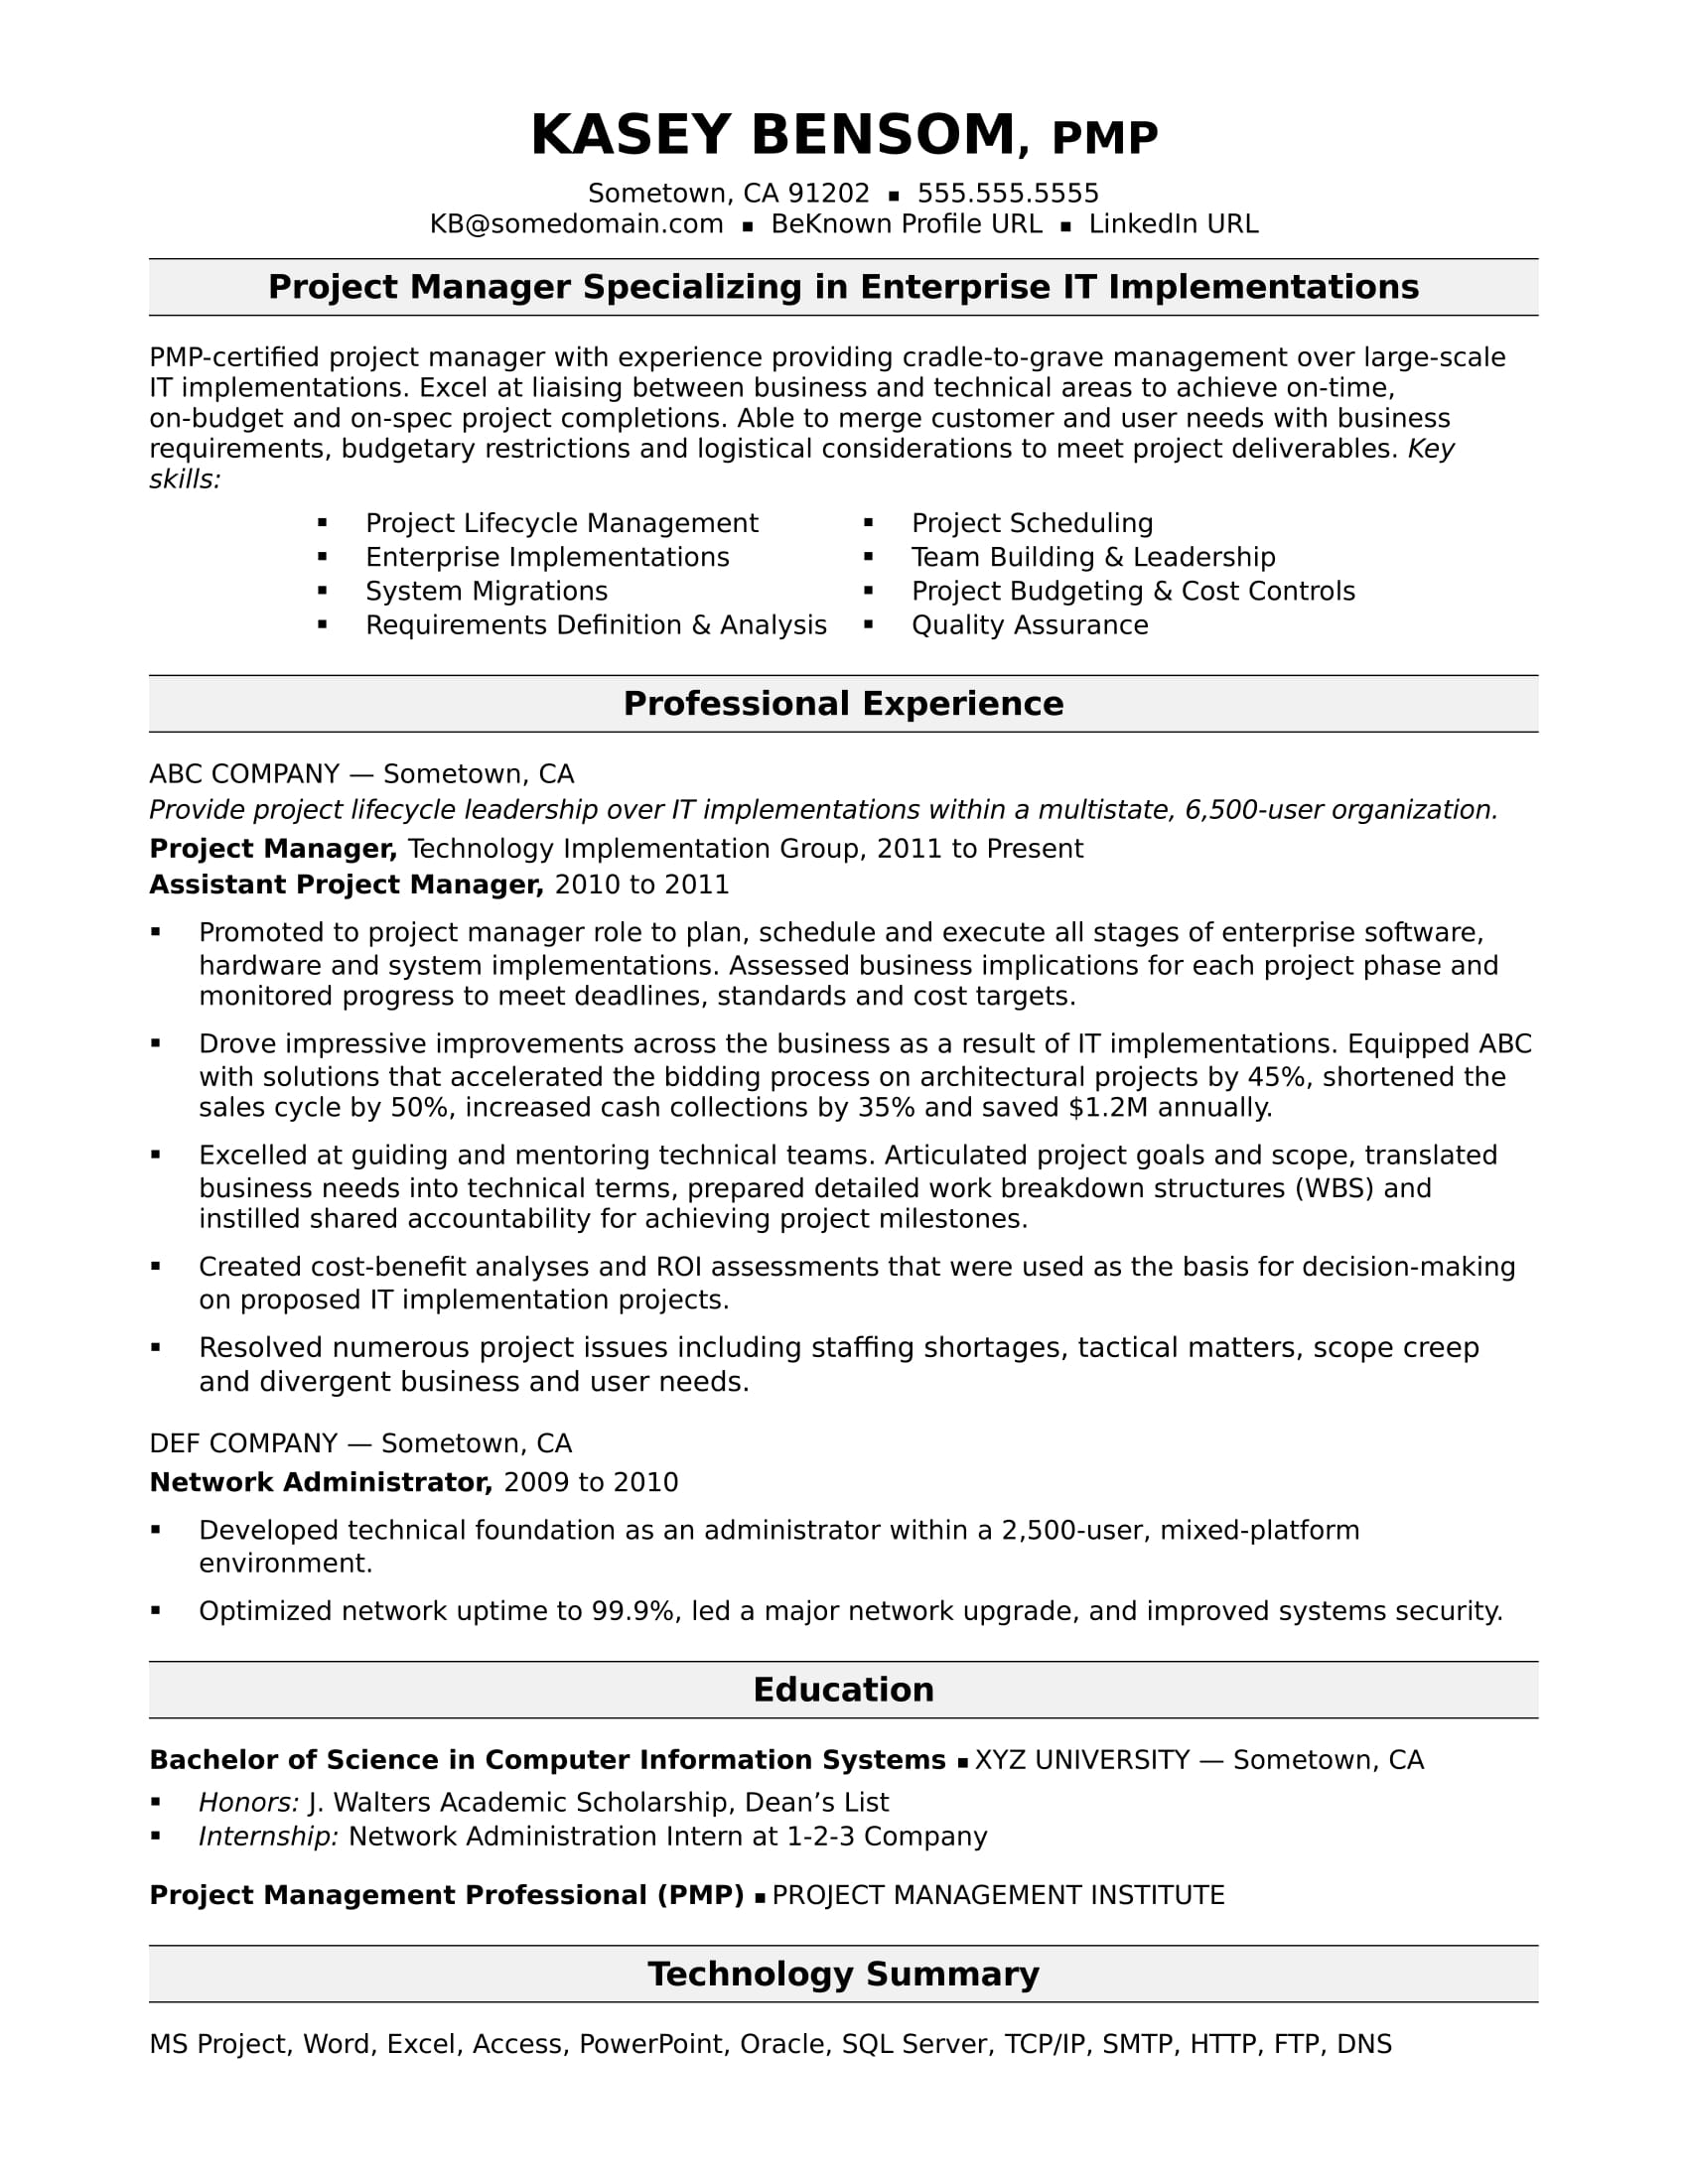 Sample Resume for a Midlevel IT Project Manager  Monstercom